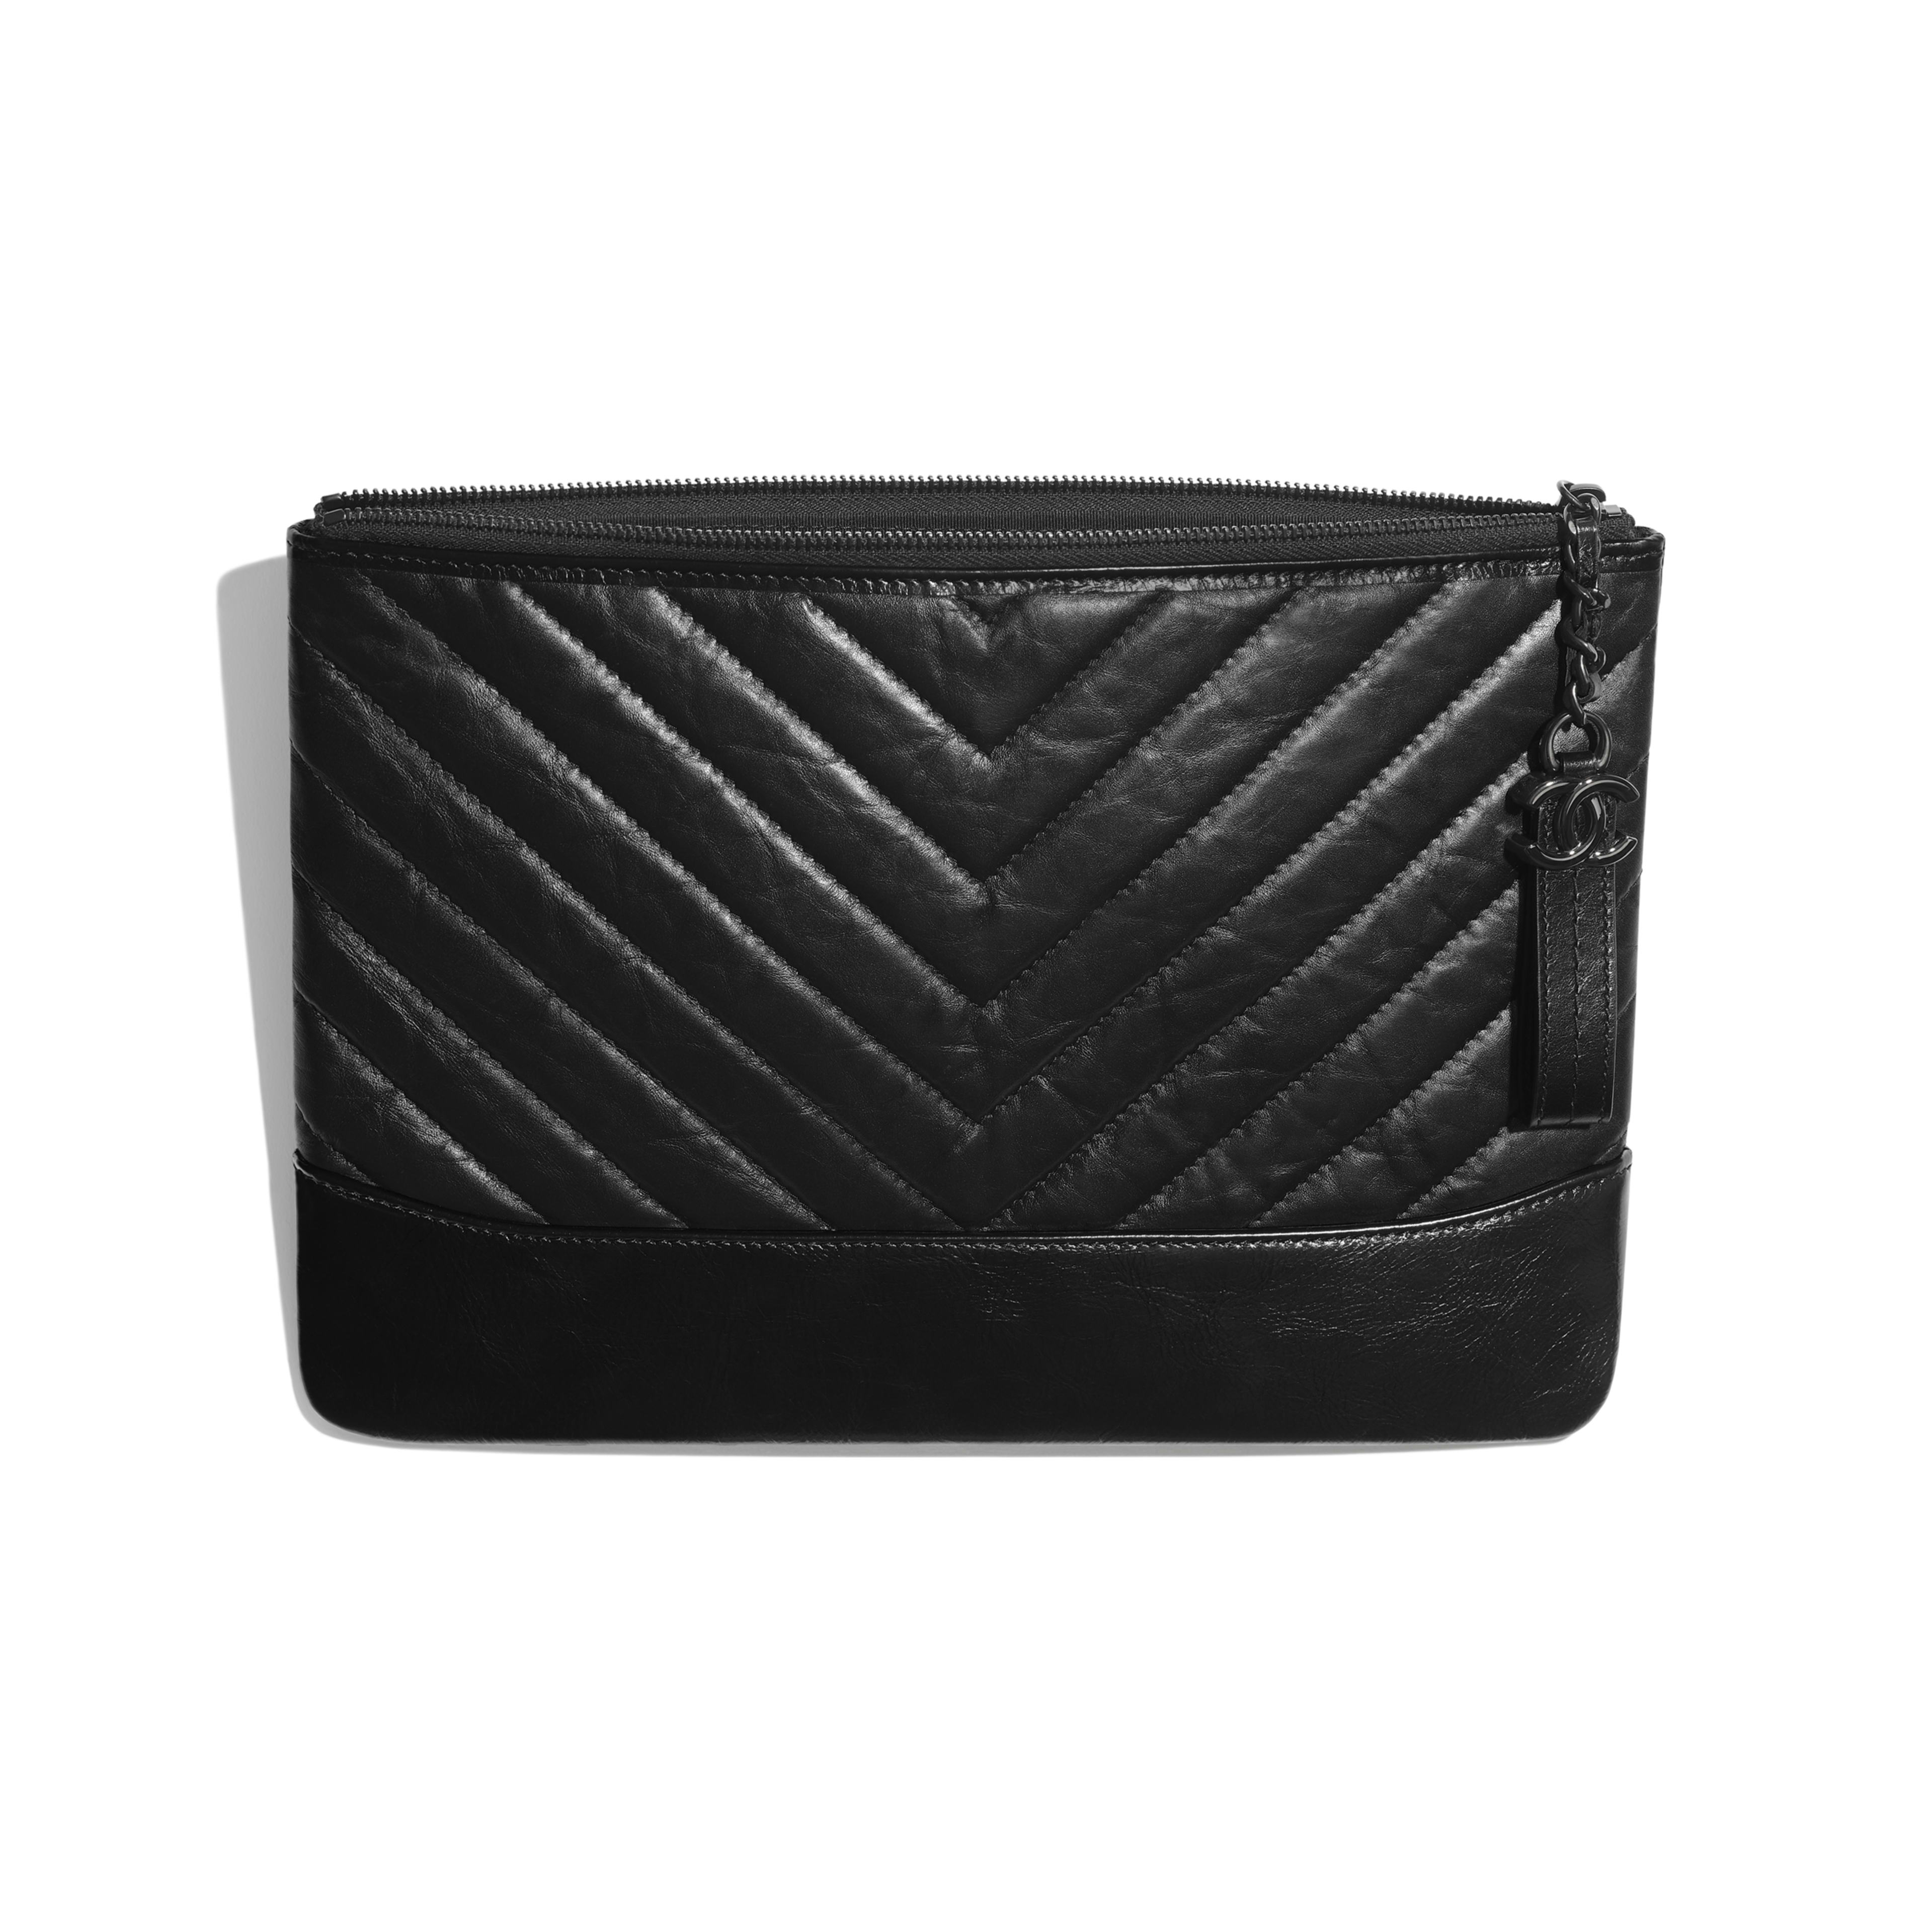 Pouch - Black - Aged Calfskin, Smooth Calfskin & Black Metal - Other view - see full sized version